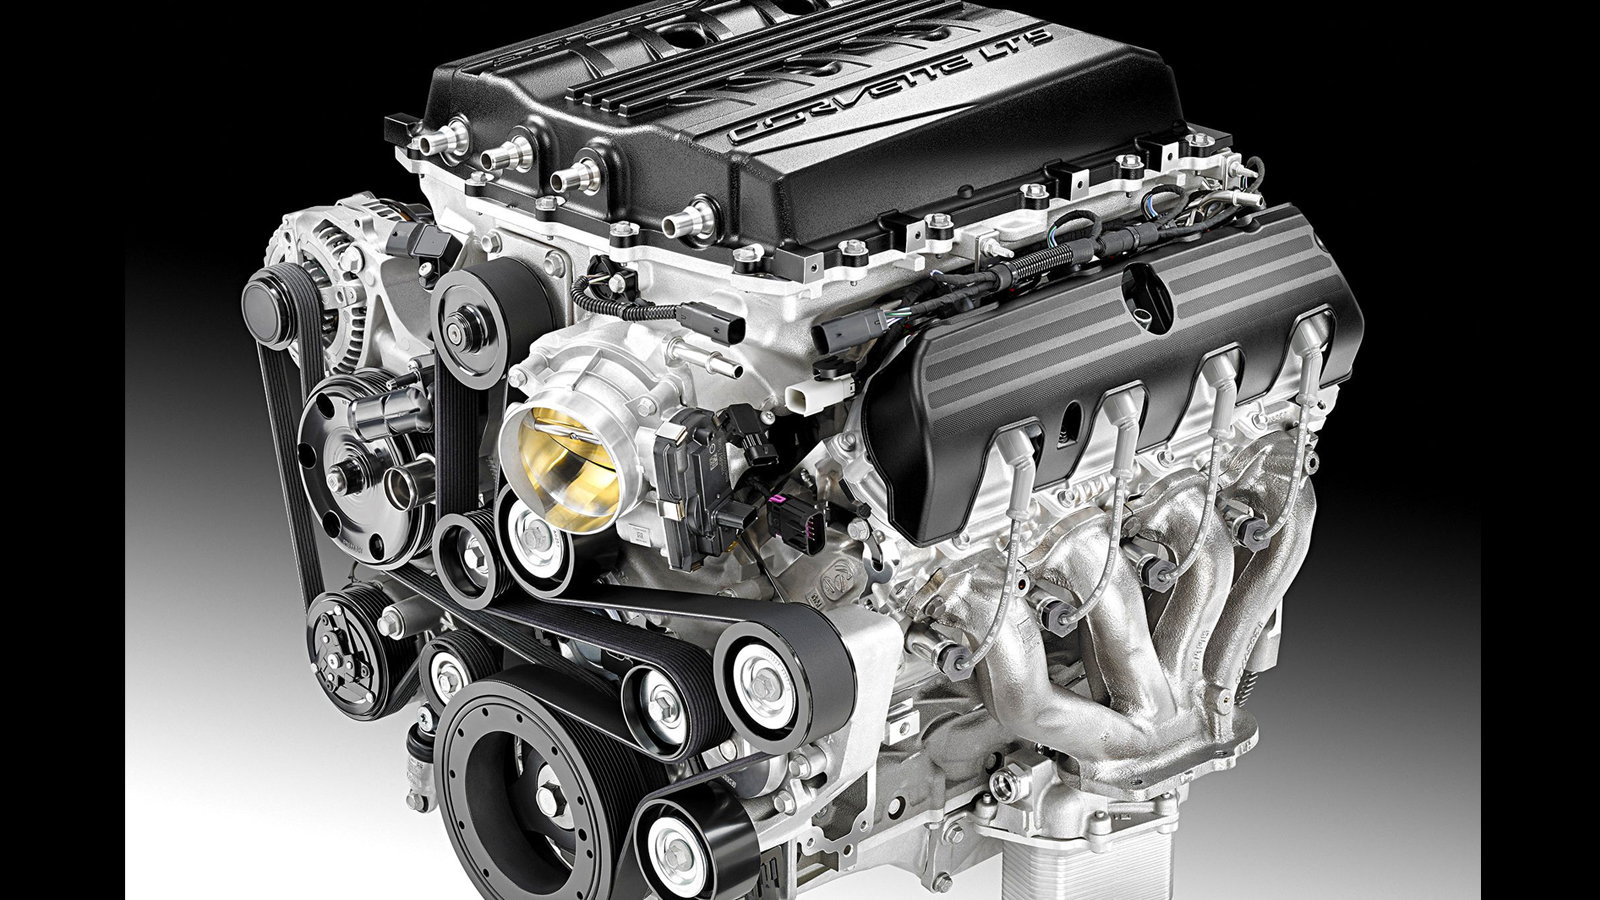 Welp, the C7 ZR-1's Engine is Now a Crate Motor